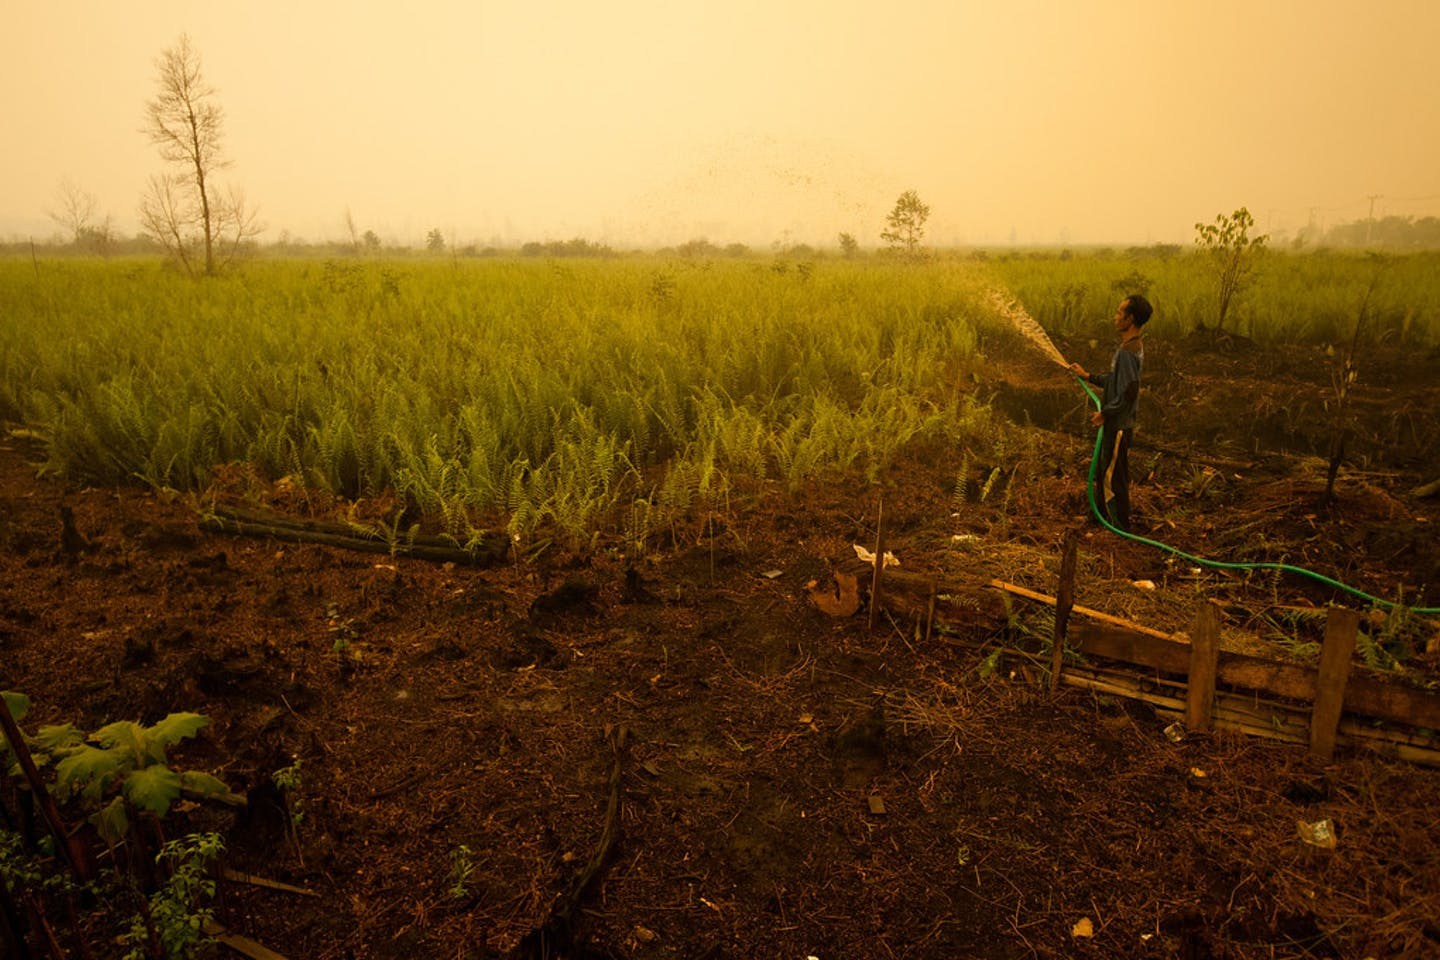 crops Central Kalimantan Indonesia